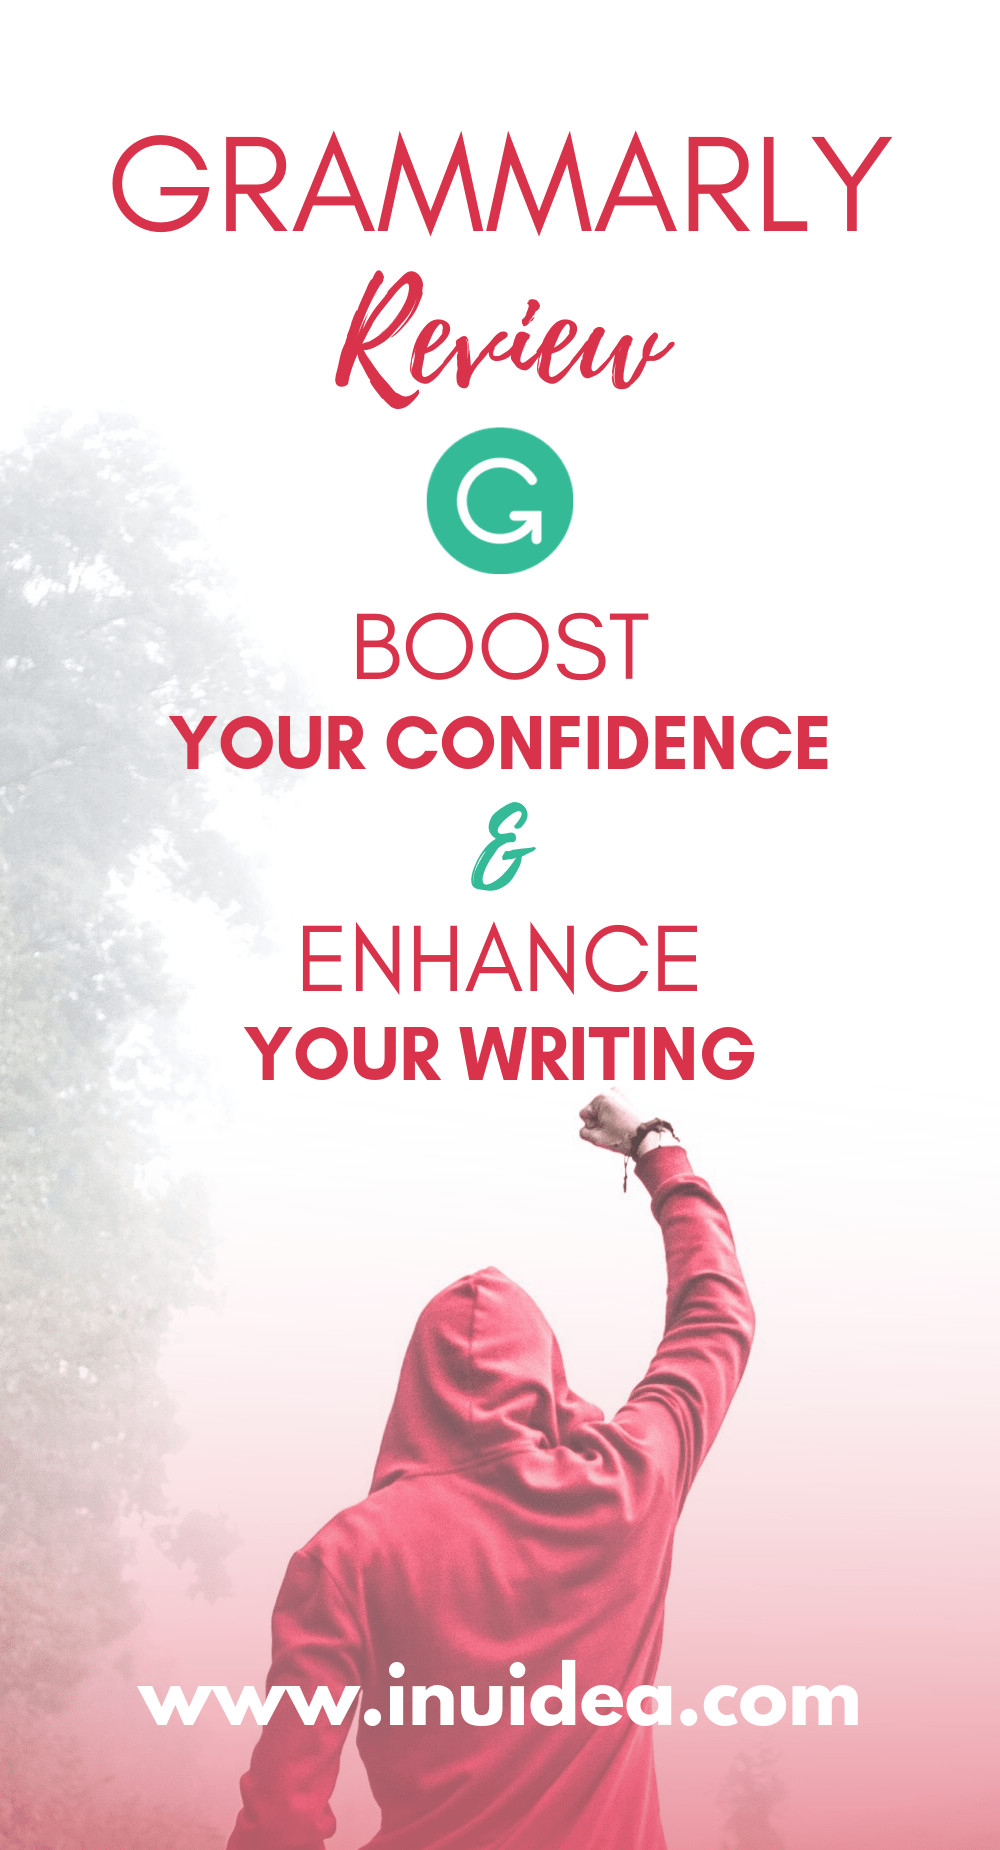 Deal Dash Grammarly